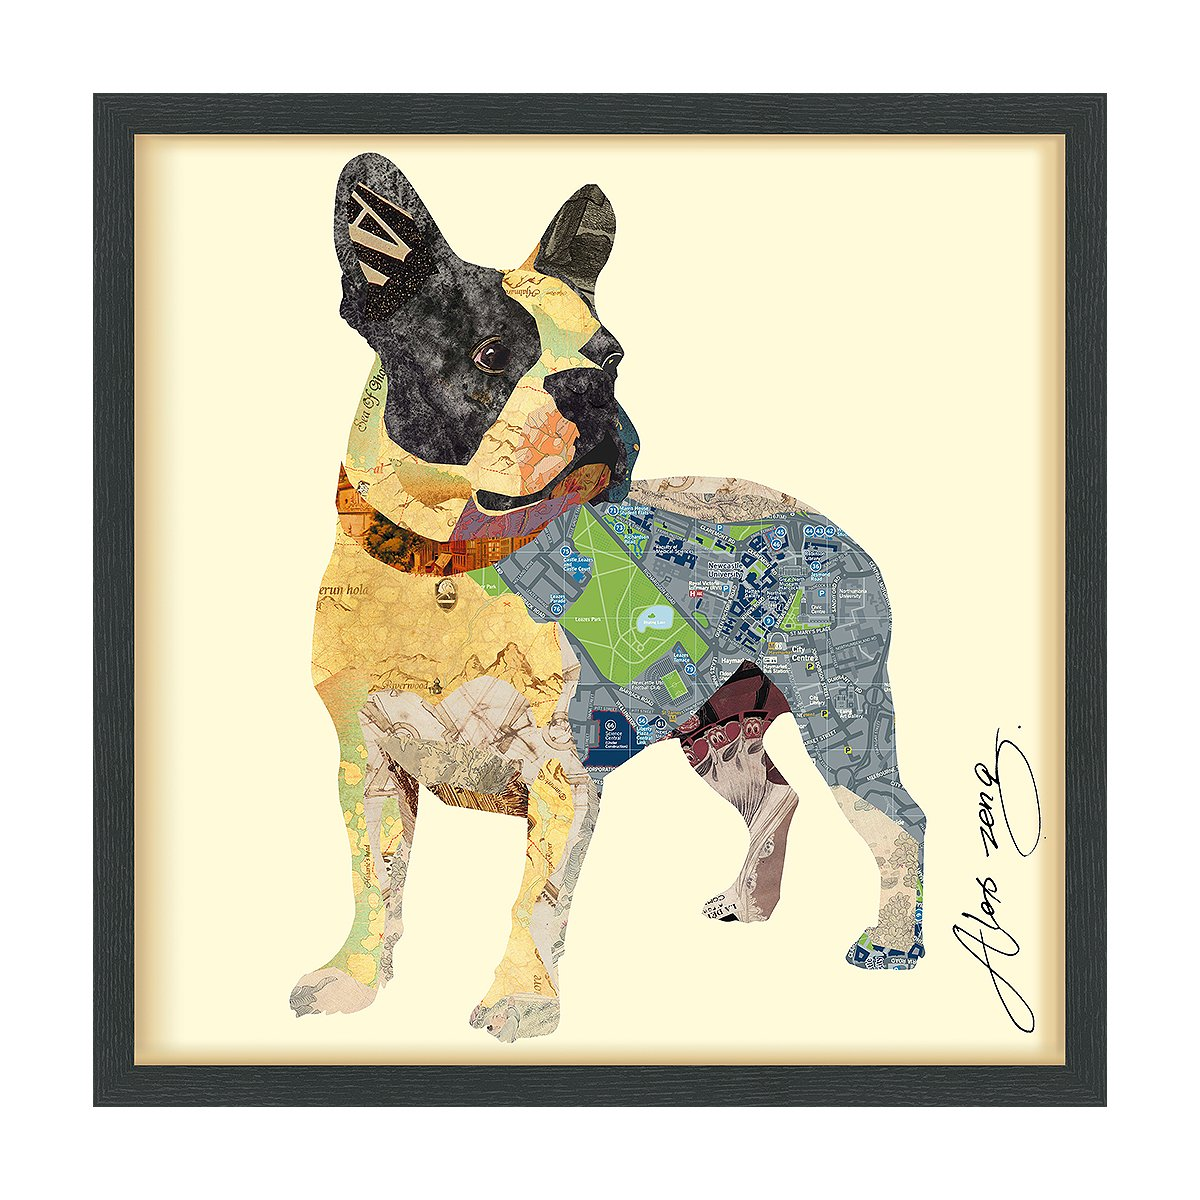 Empire Art Direct ''Boston Terrier'' Dimensional Art Collage Hand Signed by Alex Zeng Framed Graphic Wall Art